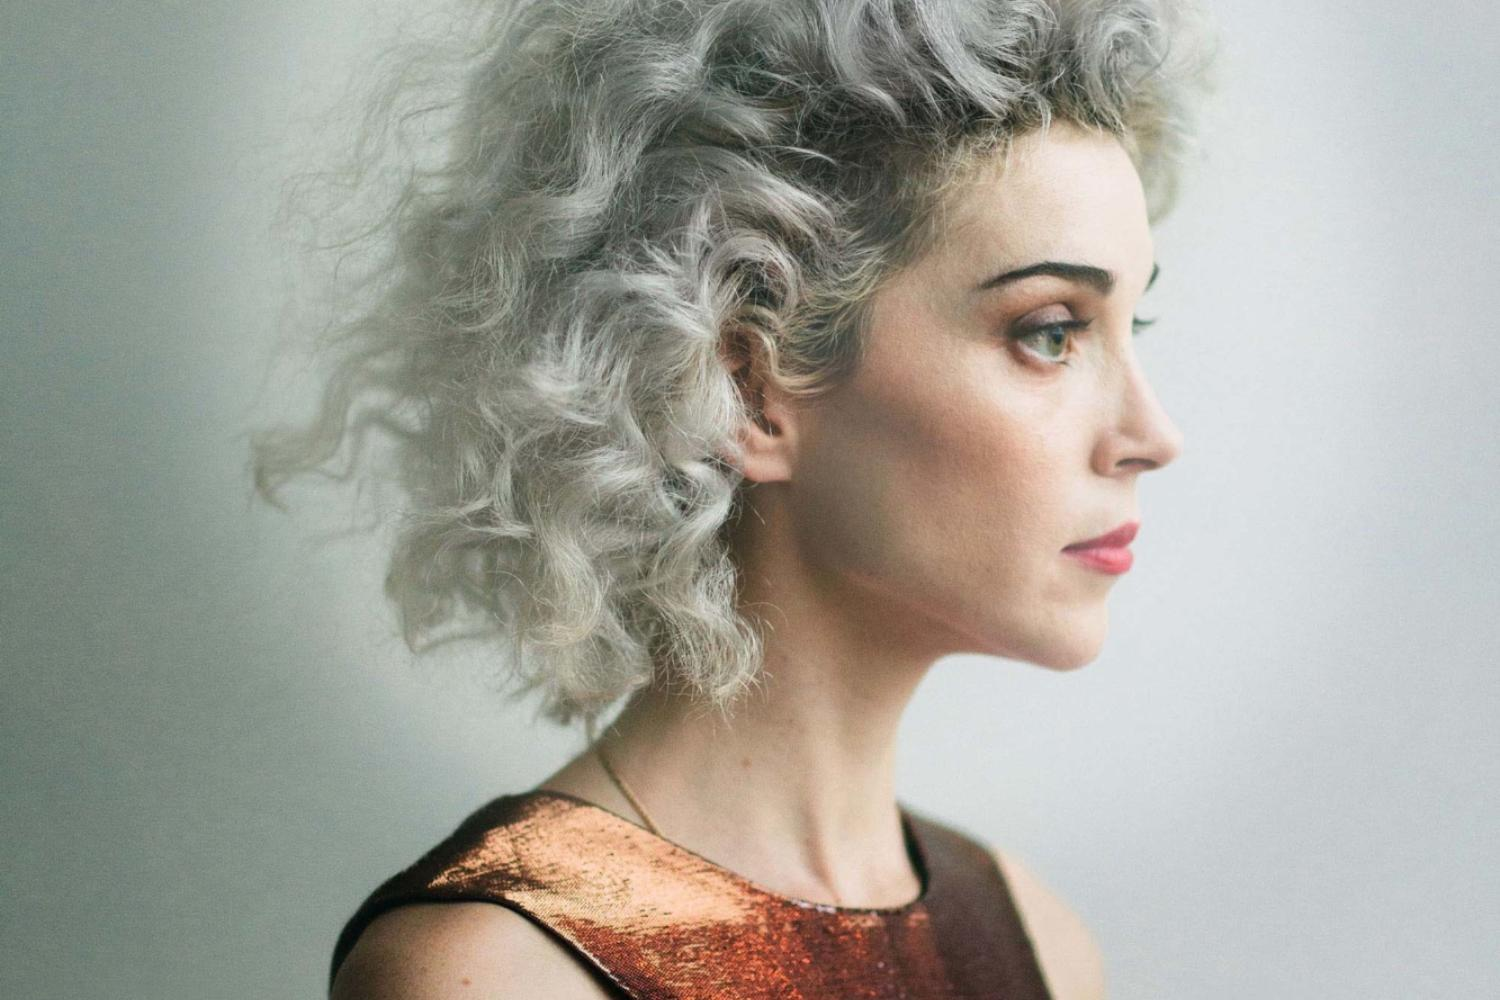 Listen to St. Vincent, Neneh Cherry and Alison Goldfrapp's 6 Music 'Three Wise Women' shows